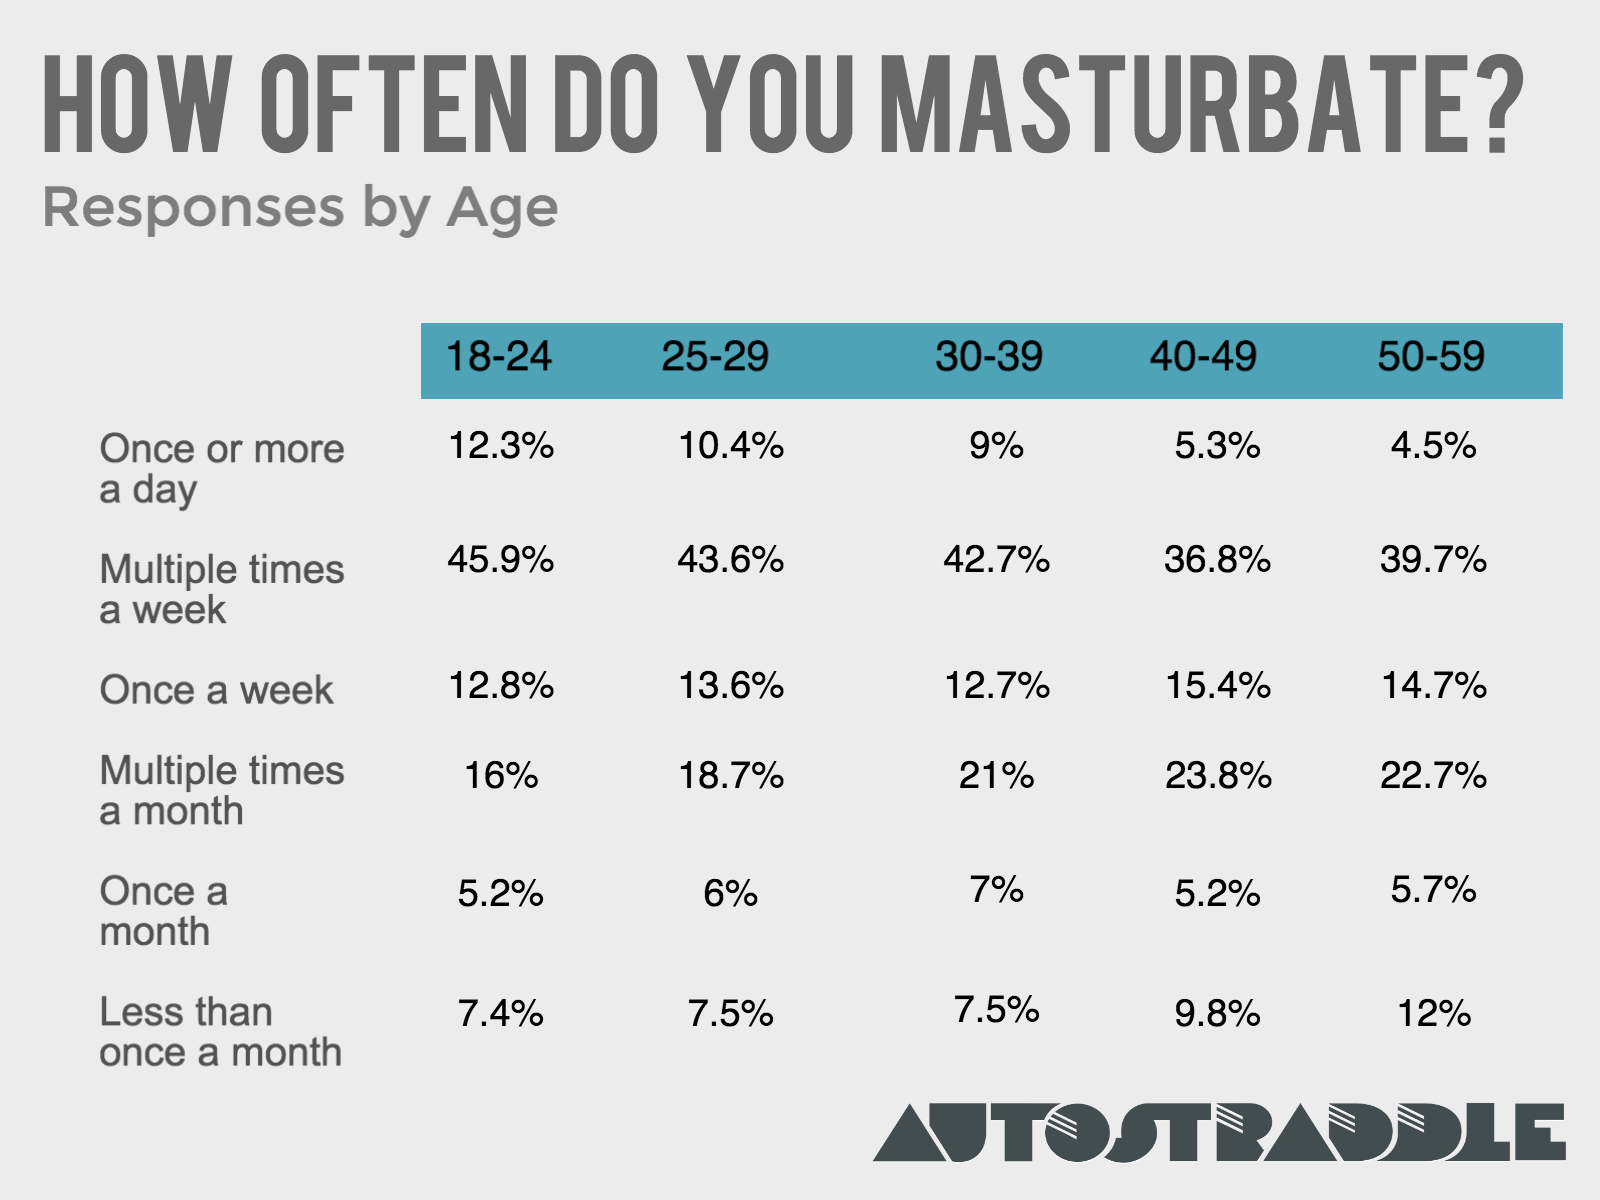 WOW what average times masturbate per week that cunt